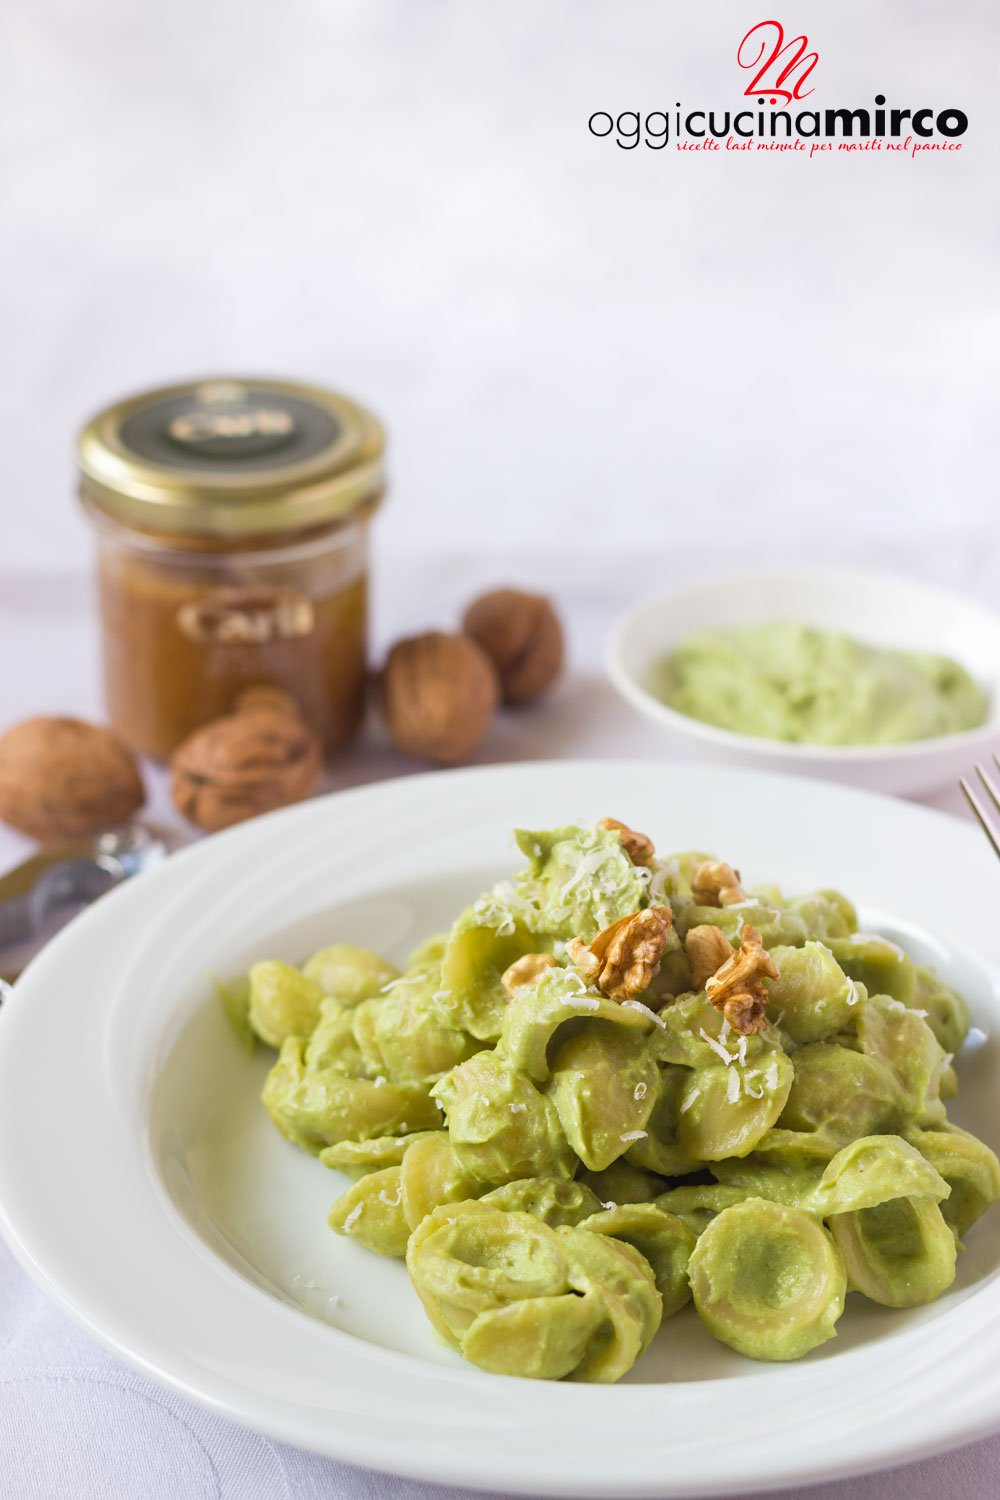 pesto di broccoli e noci